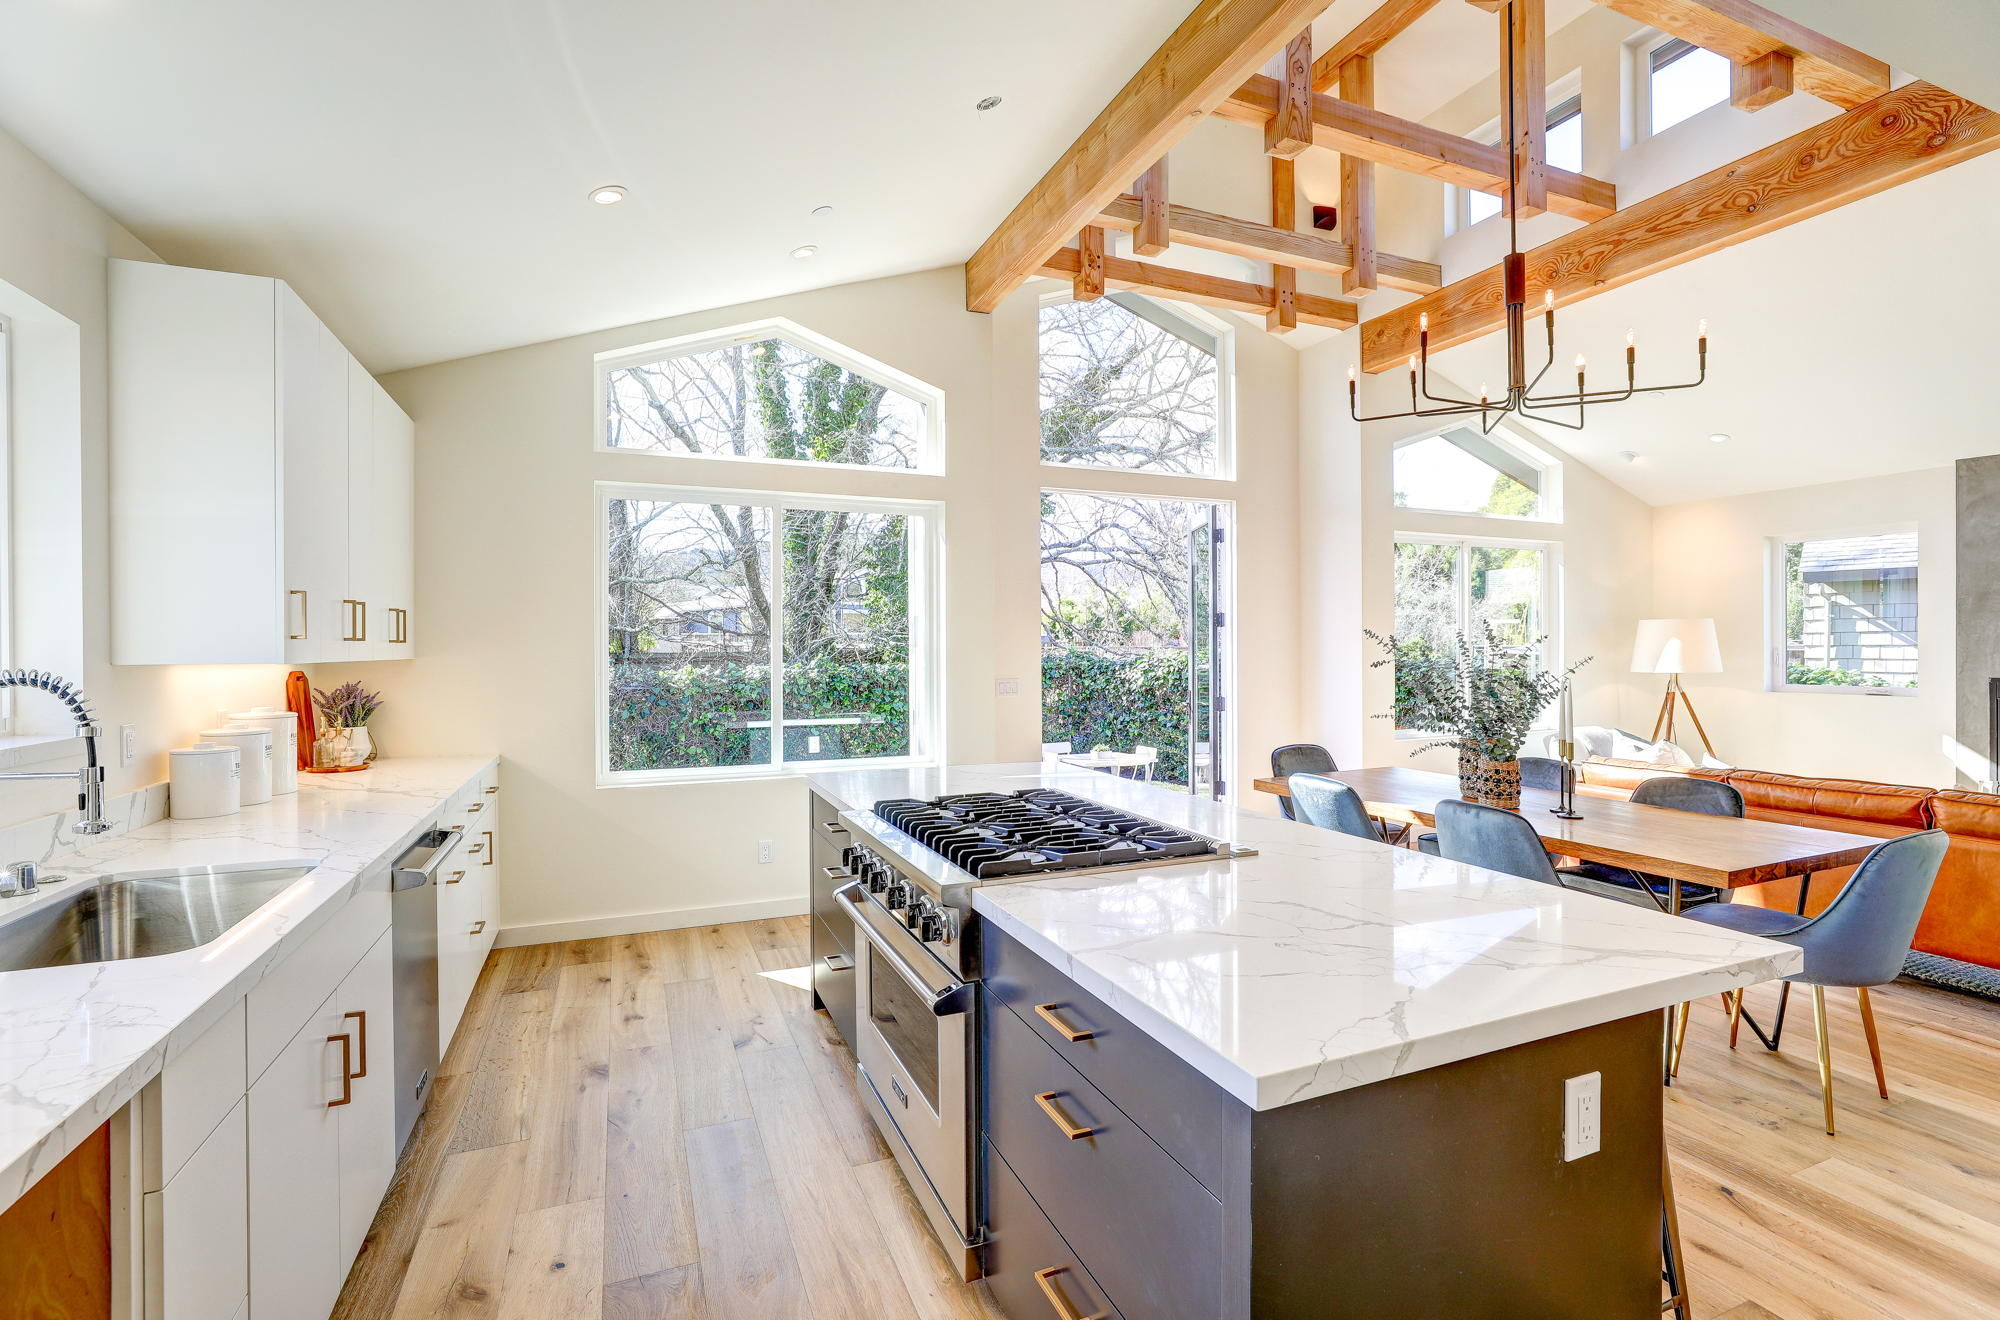 38 Ryan Avenue, Mill Valley - Sycamore Park Homes for sale - 29- Listed by Team Own Marin with Compass Real Estate.jpg